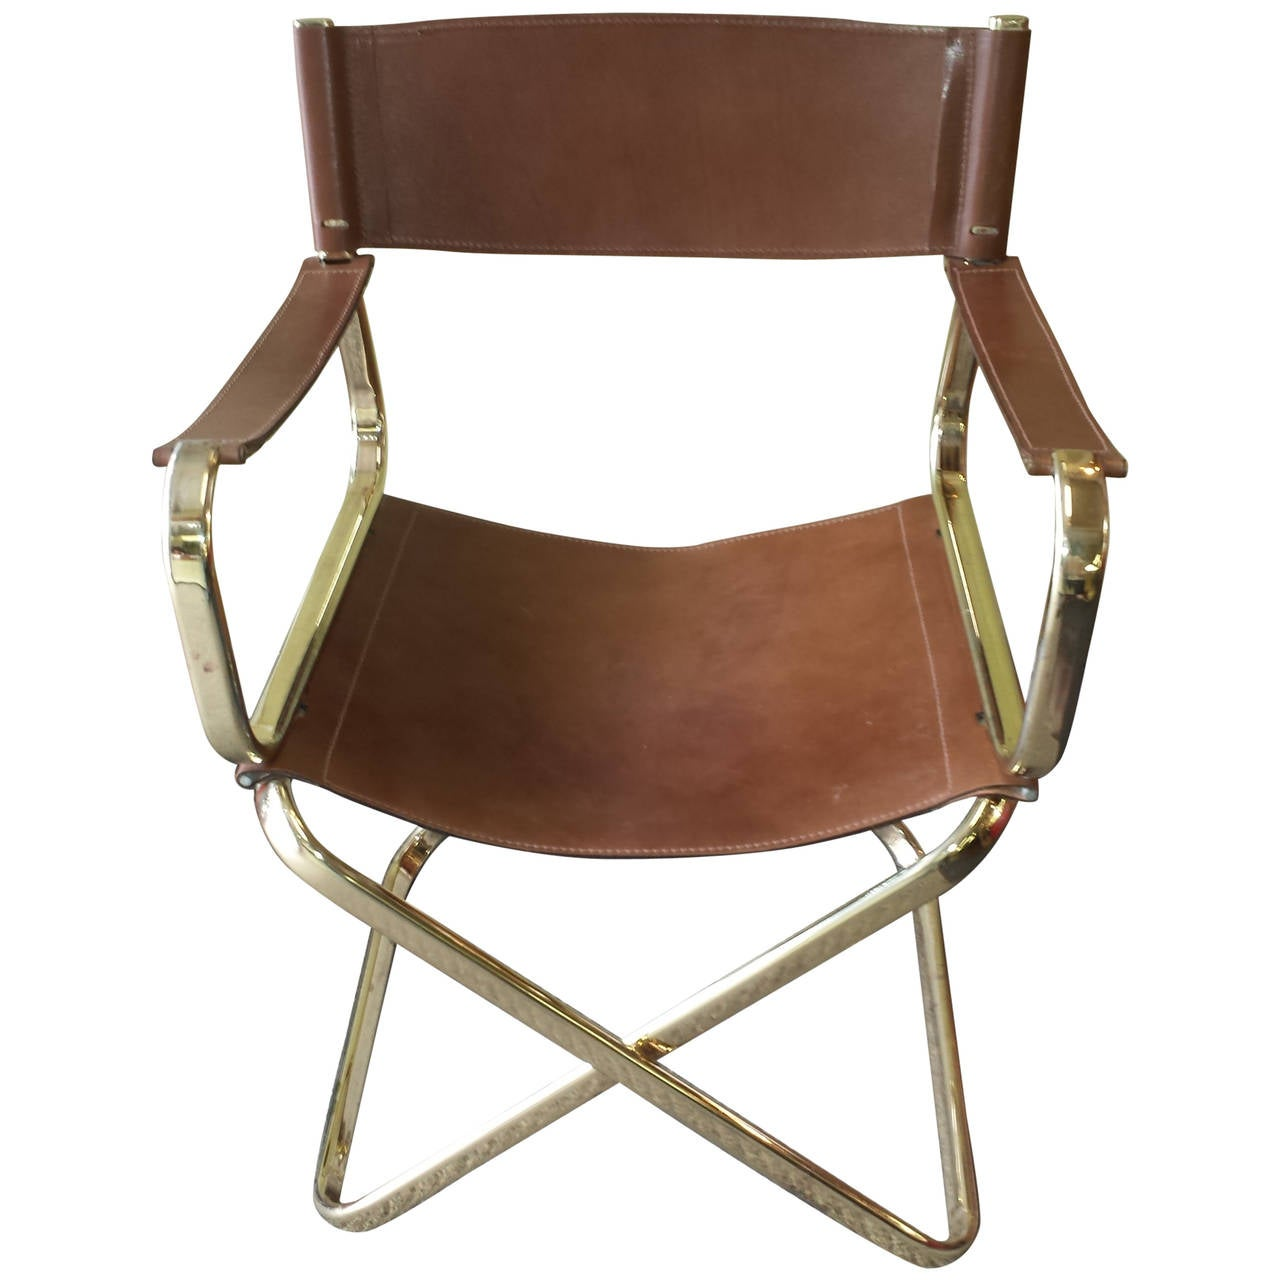 folding directors chairs dunlop fishing chair mid century italian designed leather director 39s